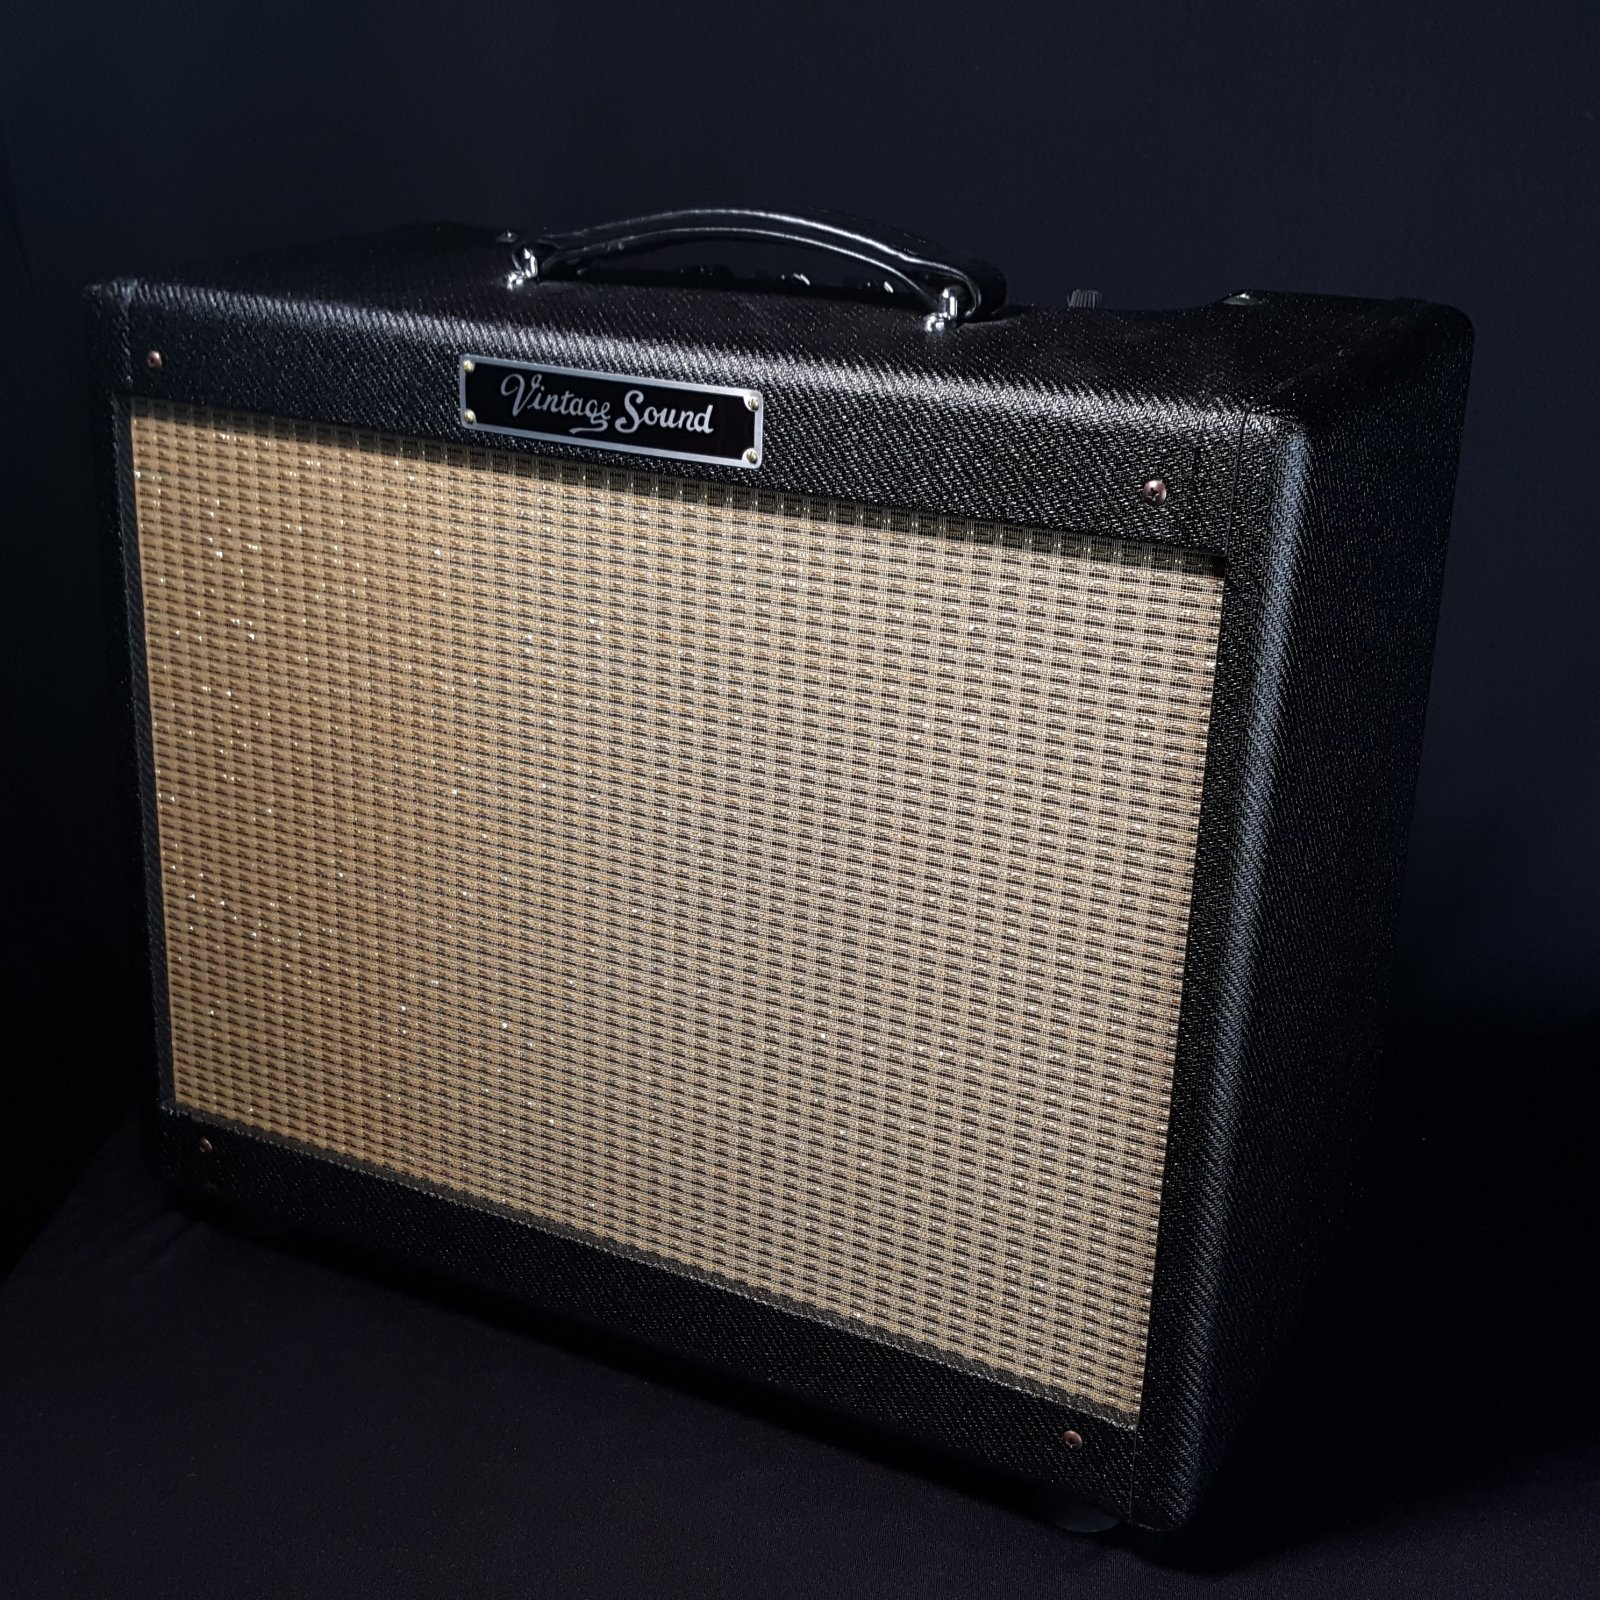 USED Vintage Sound Black Tweed 15 Combo Guitar Amplifier Amp w/Cover